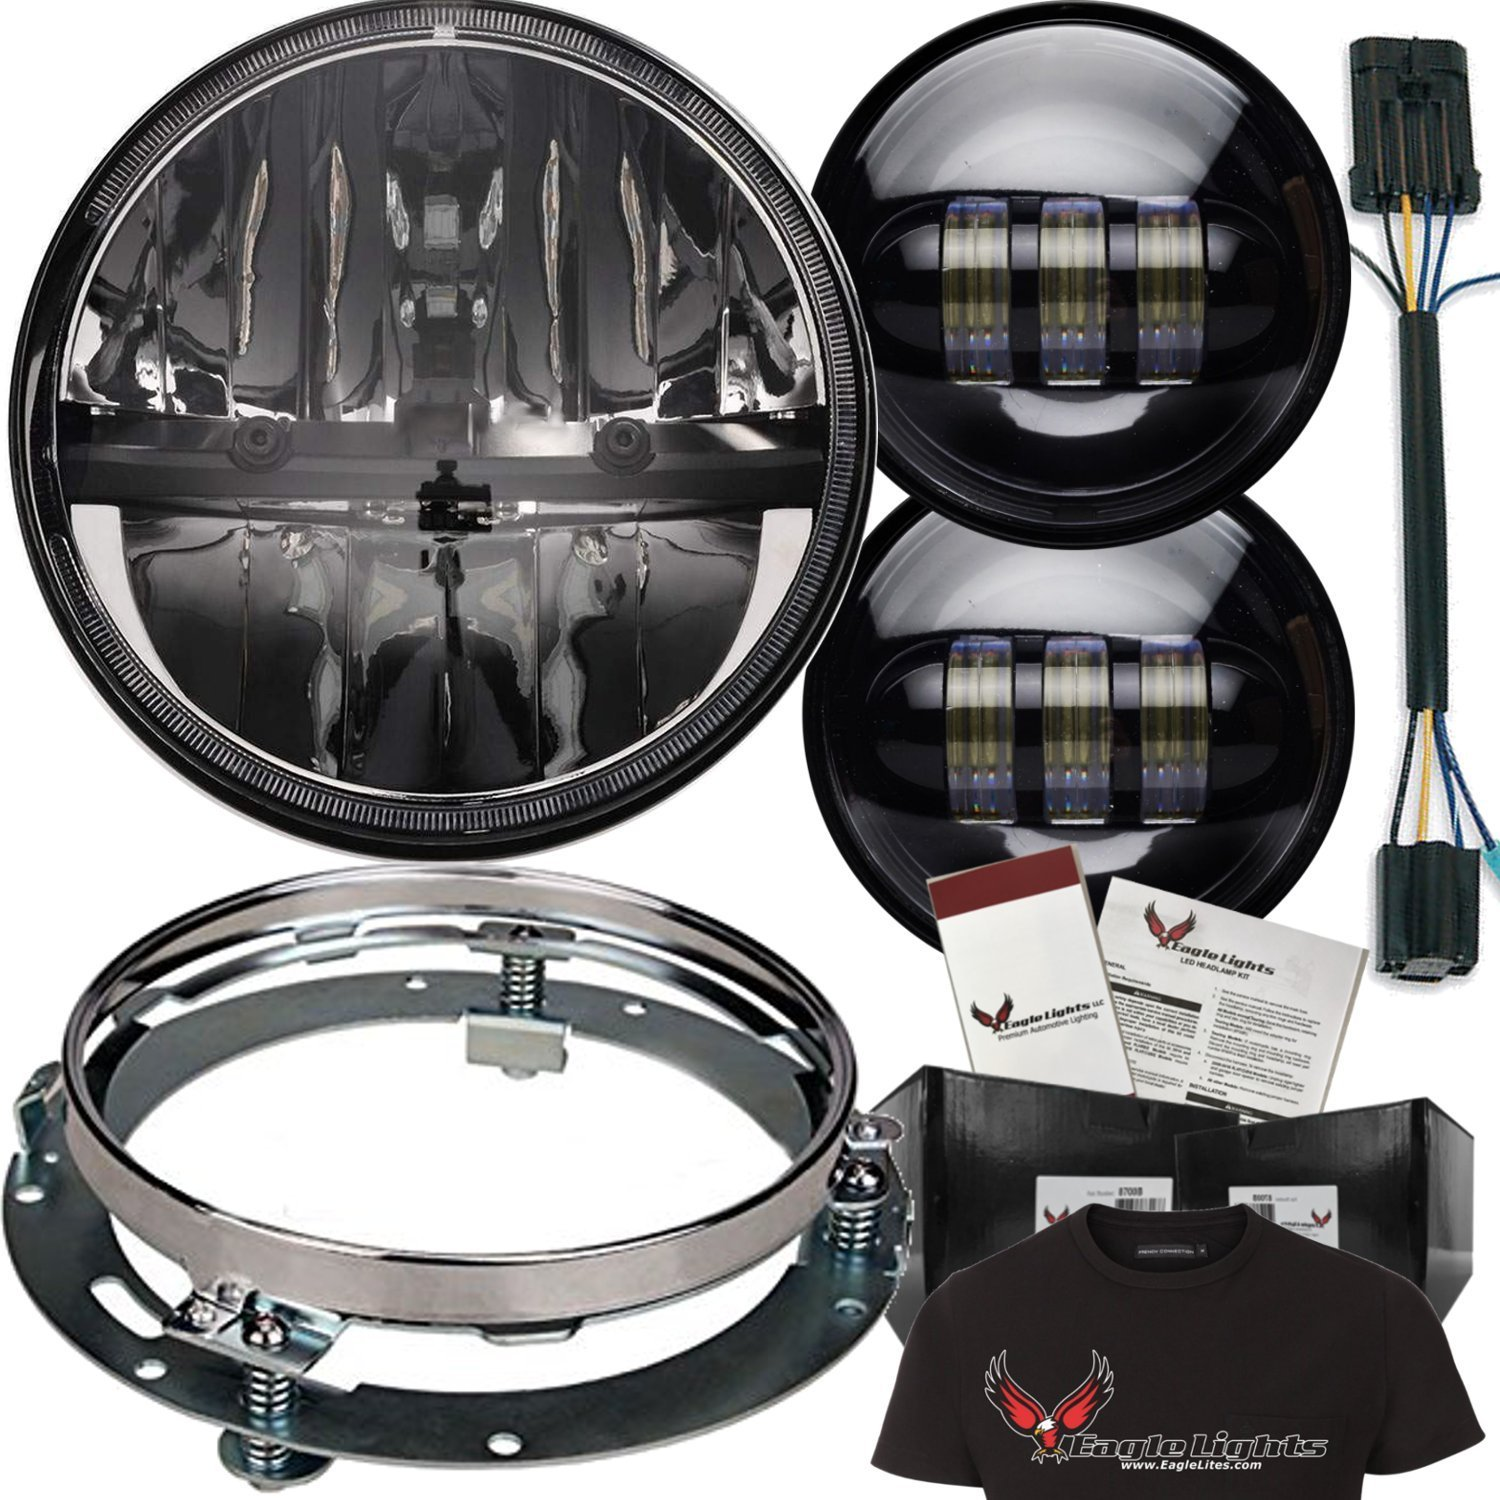 """Eagle Lights 7"""" Complex Reflector LED Headlight with LED Passing Lights, Adapter Ring & Adapter Plug"""